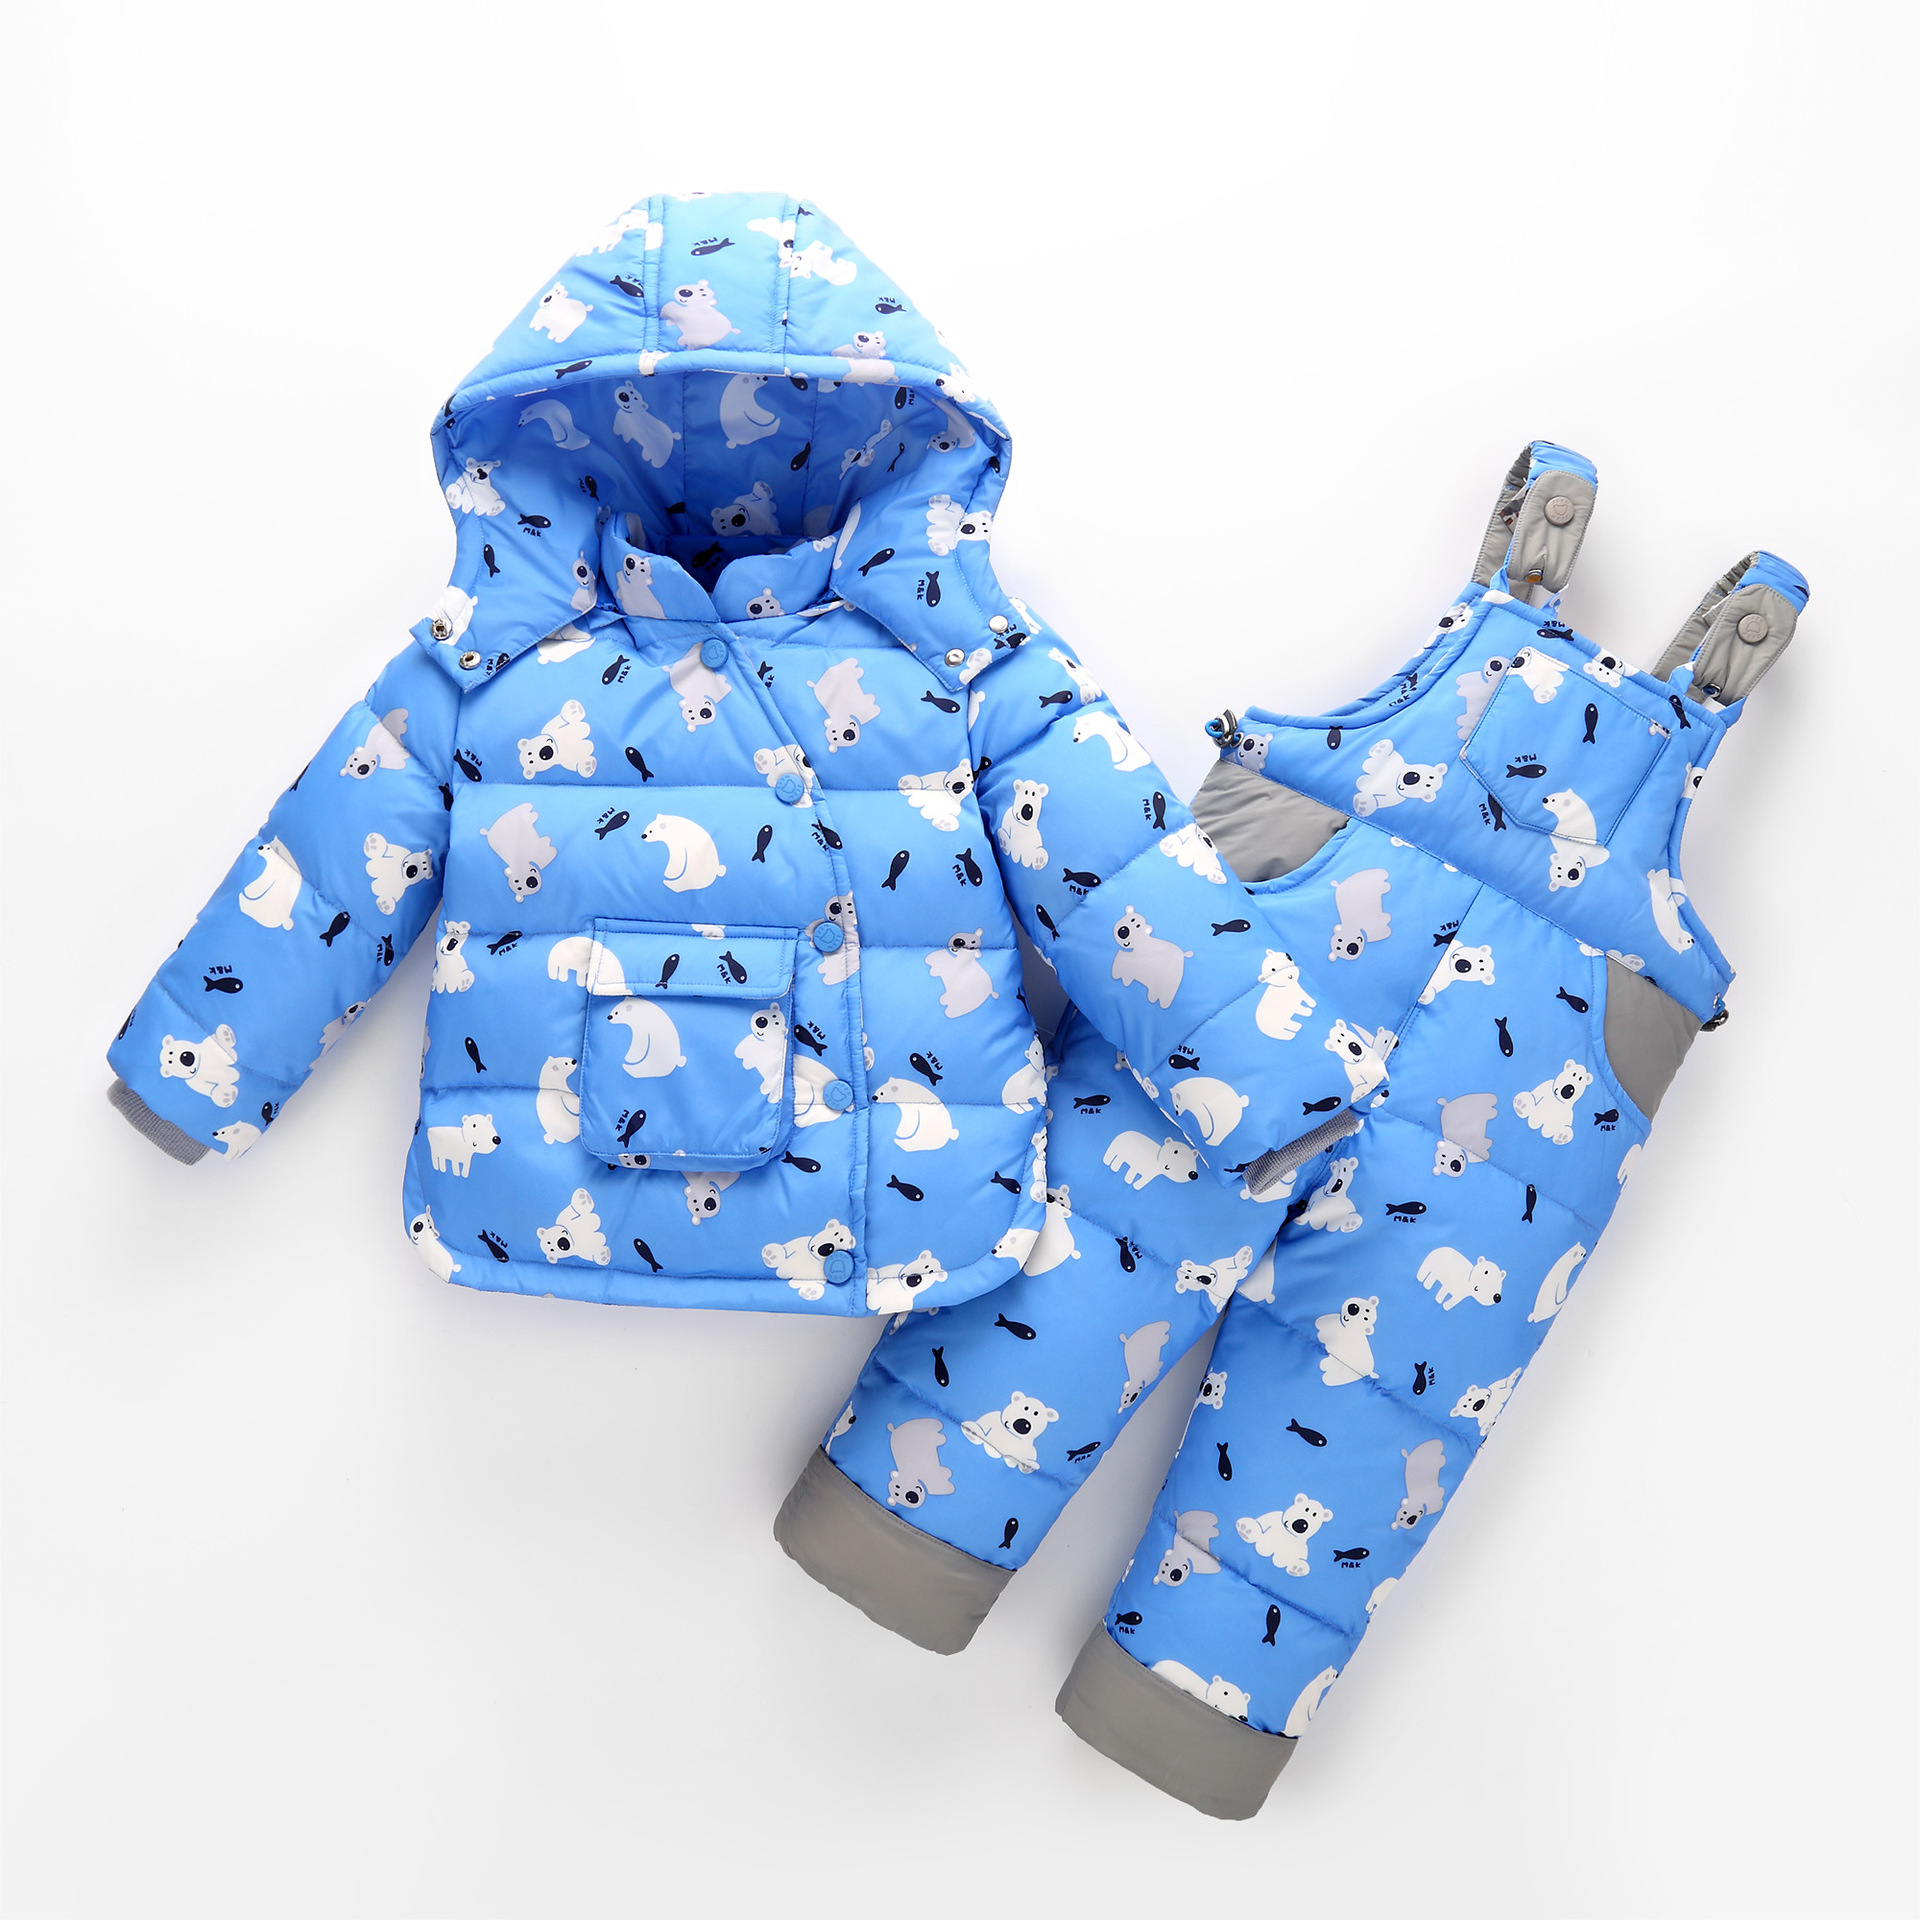 2018 New Children Down Jacket  Suspenders  Pants  Baby Strap Trouser Suit Baby boys Girls winter Clothes  kids Clothing Sets children snowsuit winter clothing set down jacket down overalls pants baby girls outfits kids suit clothes for baby boys